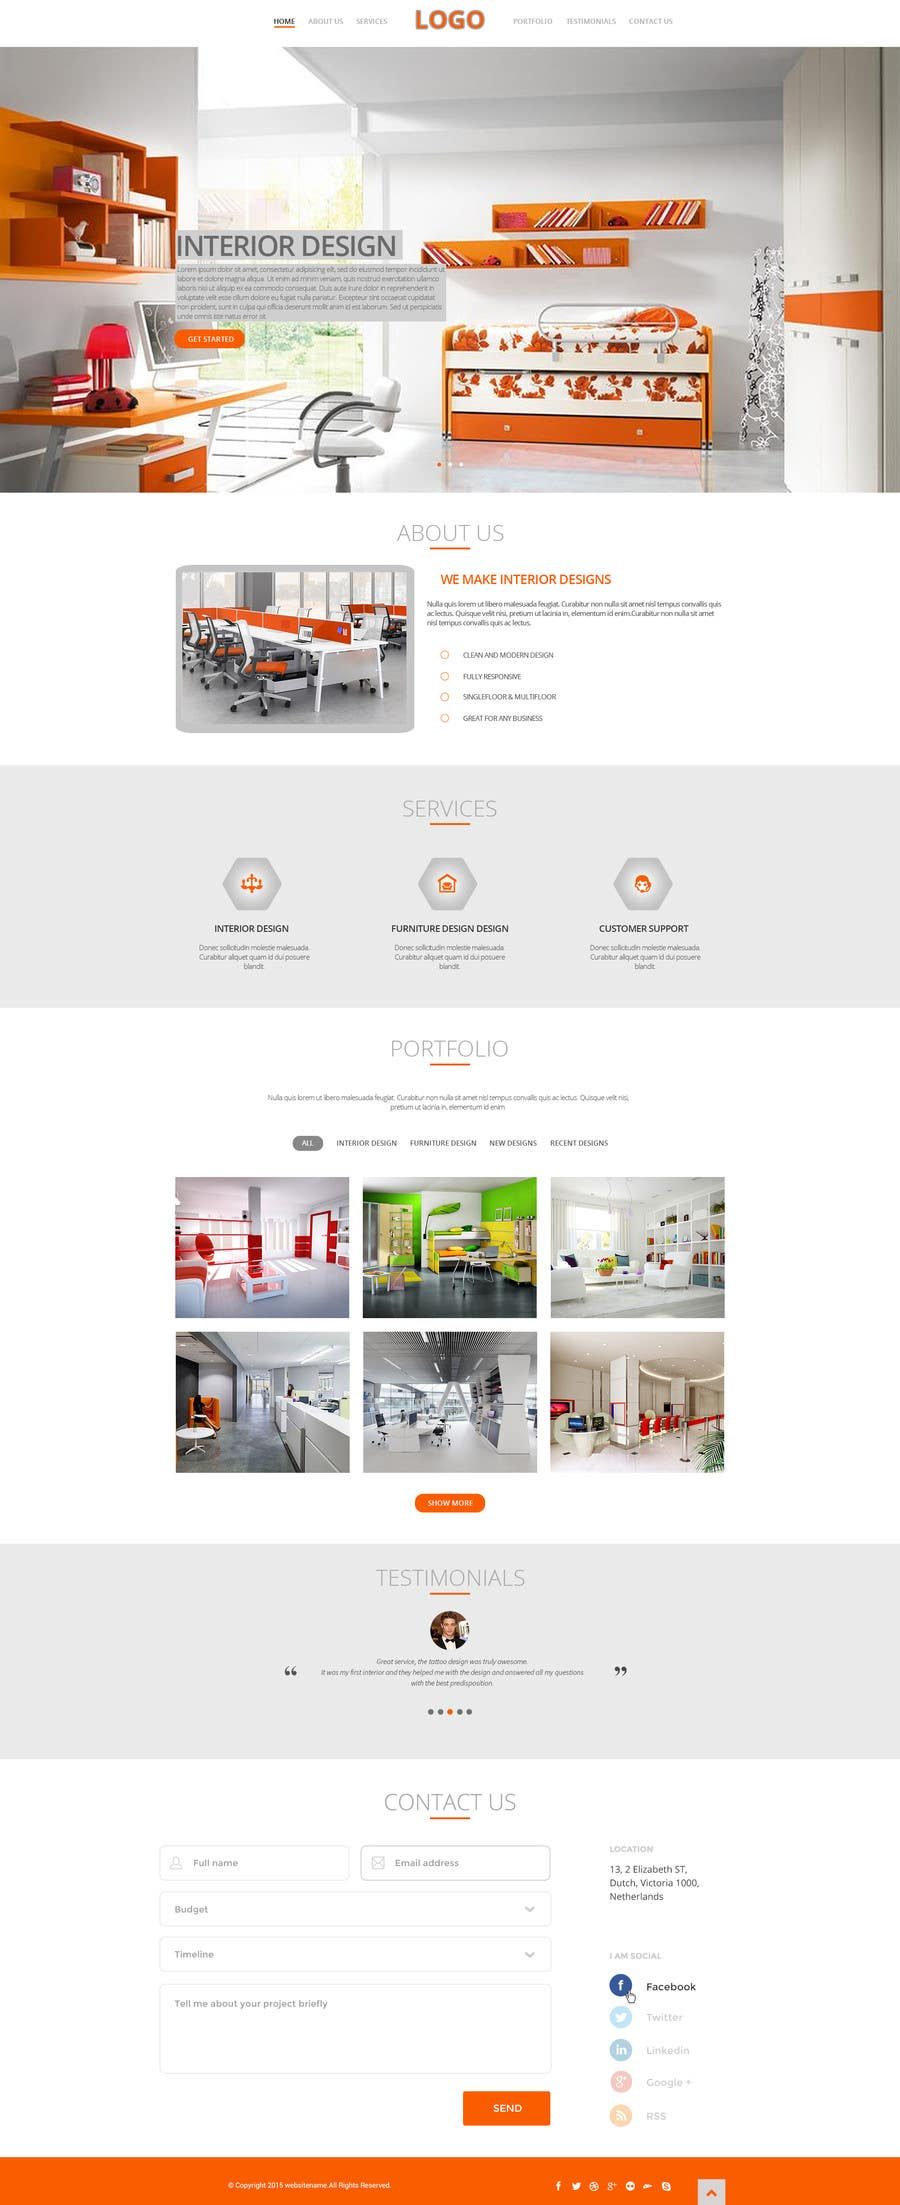 Entry 6 By Softlope535 For Design A Website Template For Interior